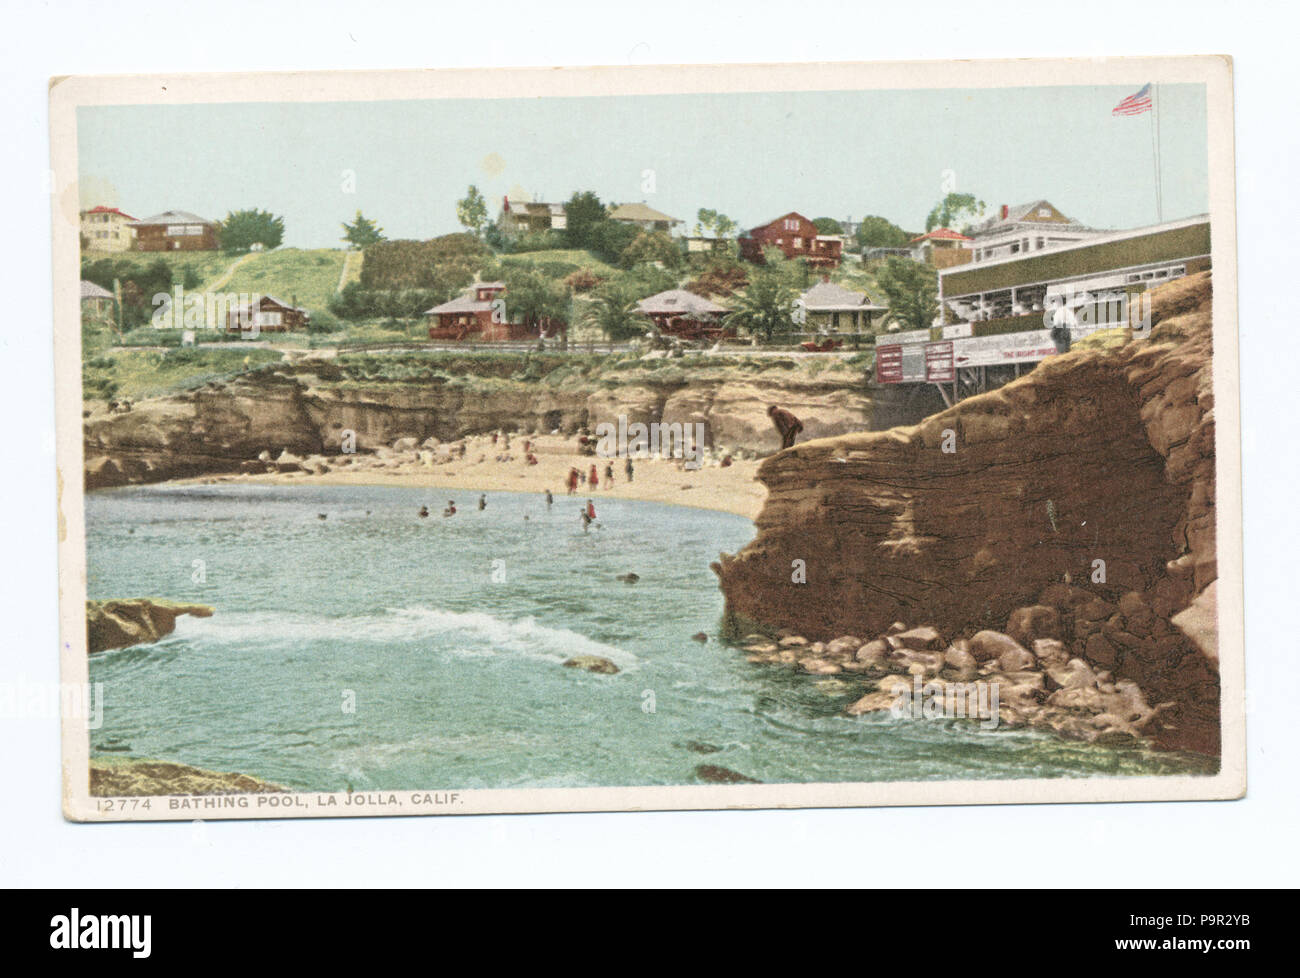 187 Bathing Pool, La Jolla, Calif (NYPL b12647398-70022) - Stock Image